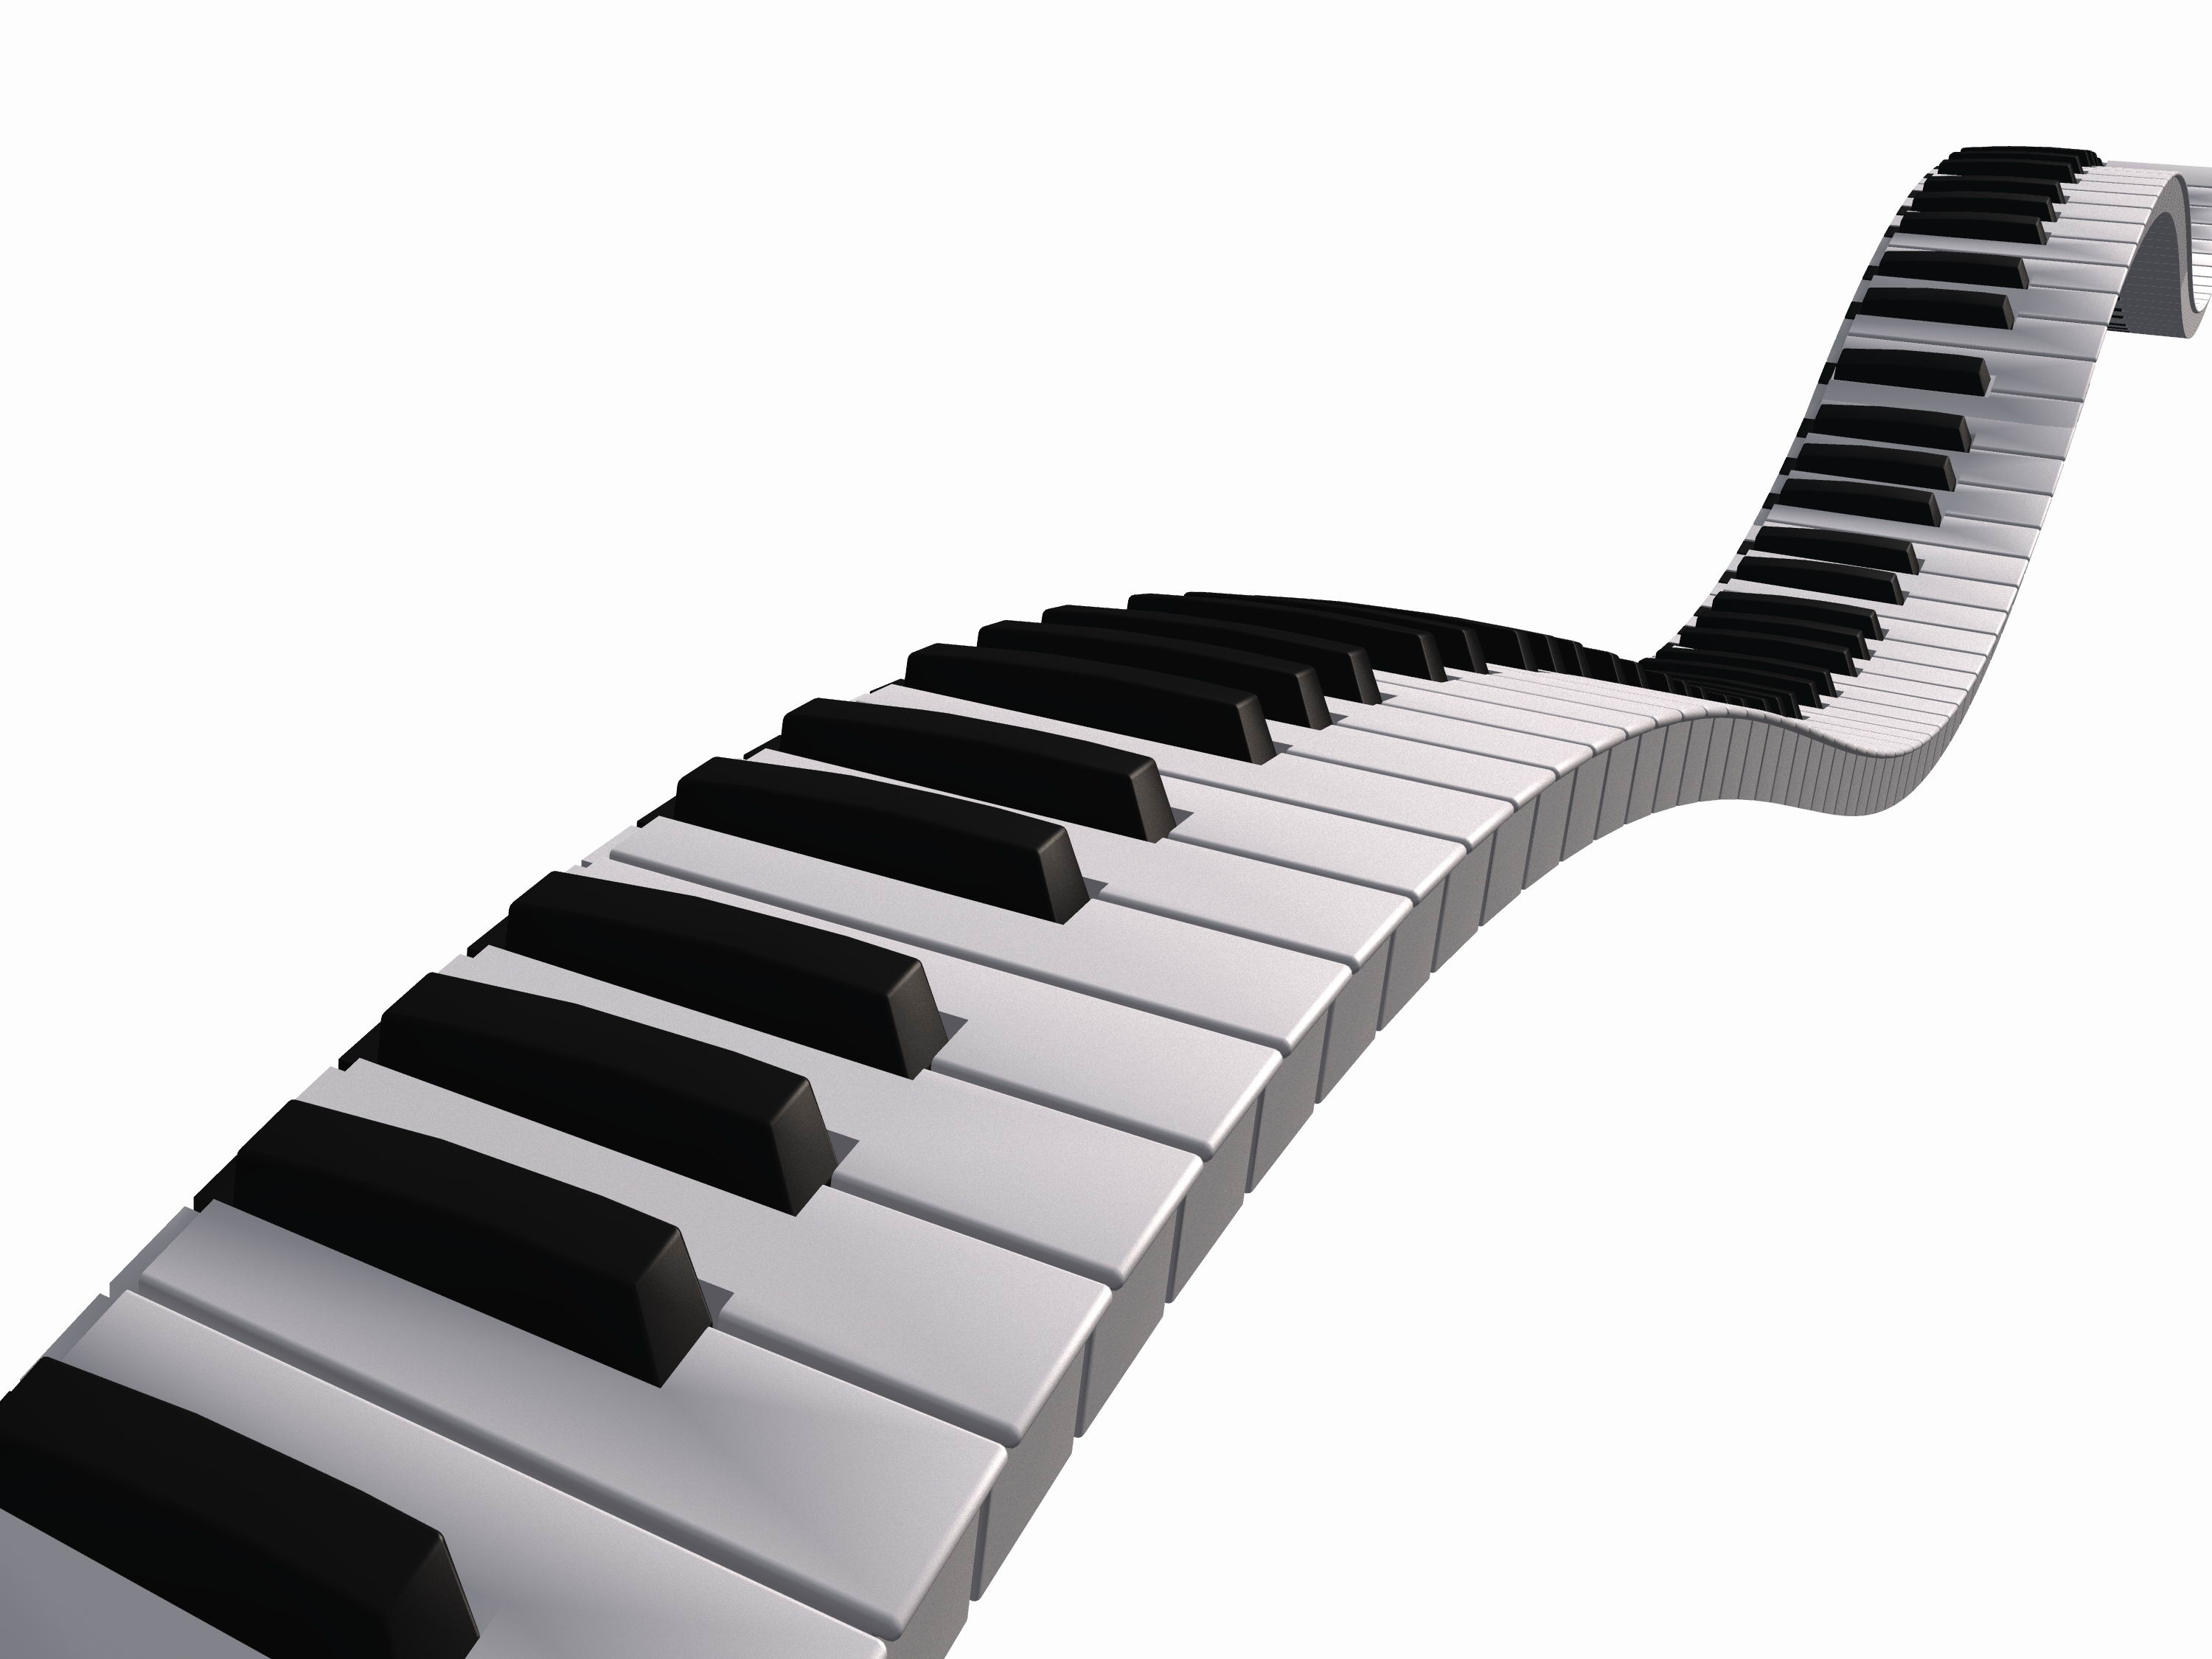 Images For > Clip Art Upright Piano